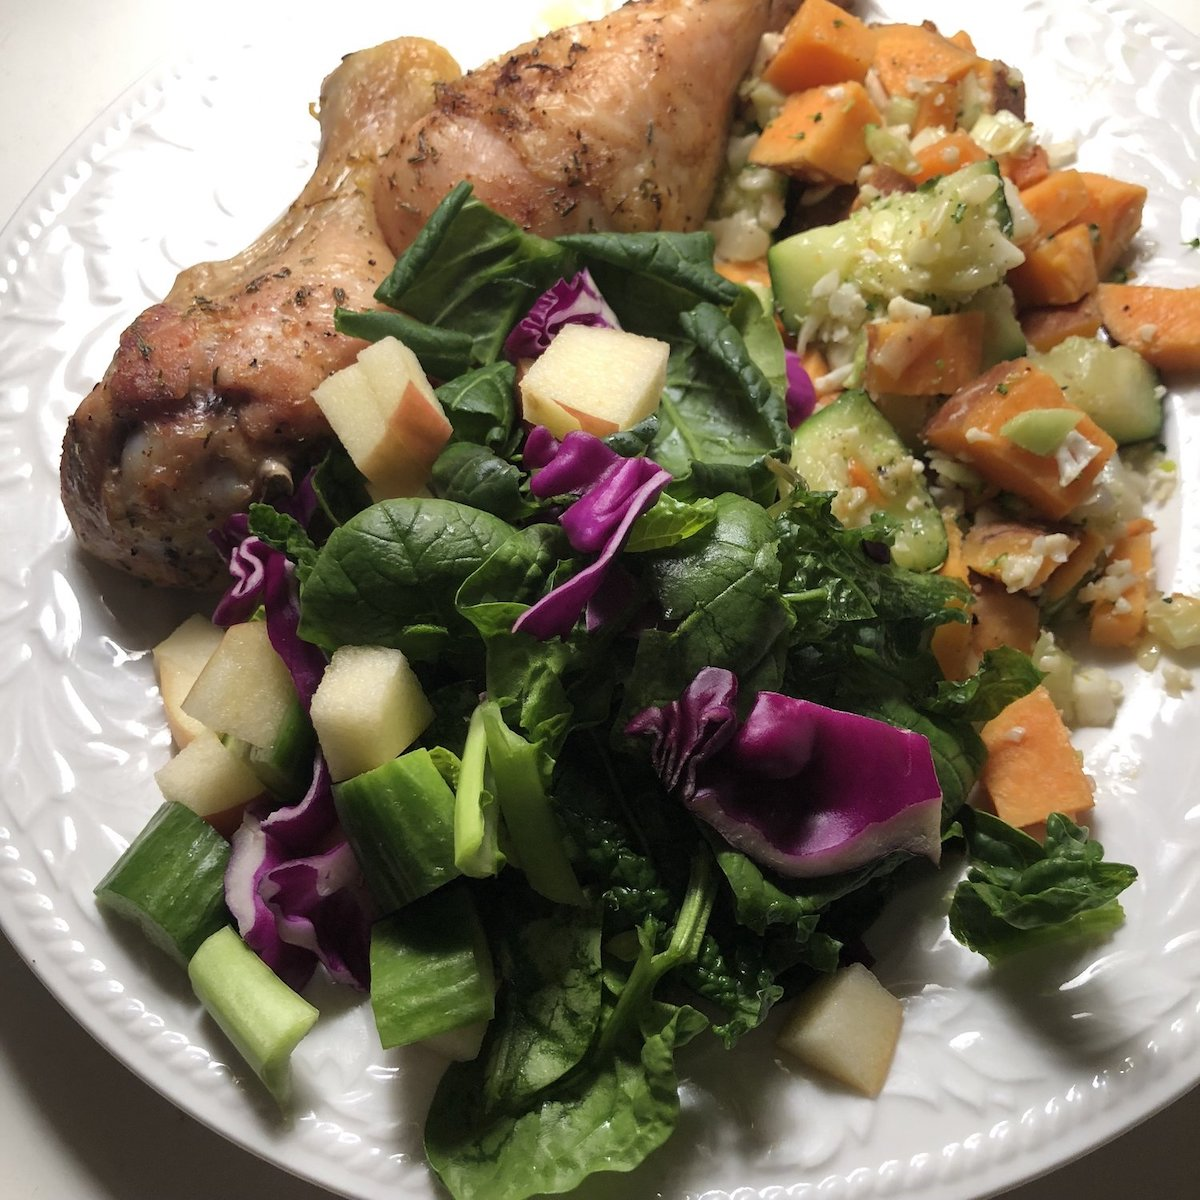 Chicken and Veggie meal